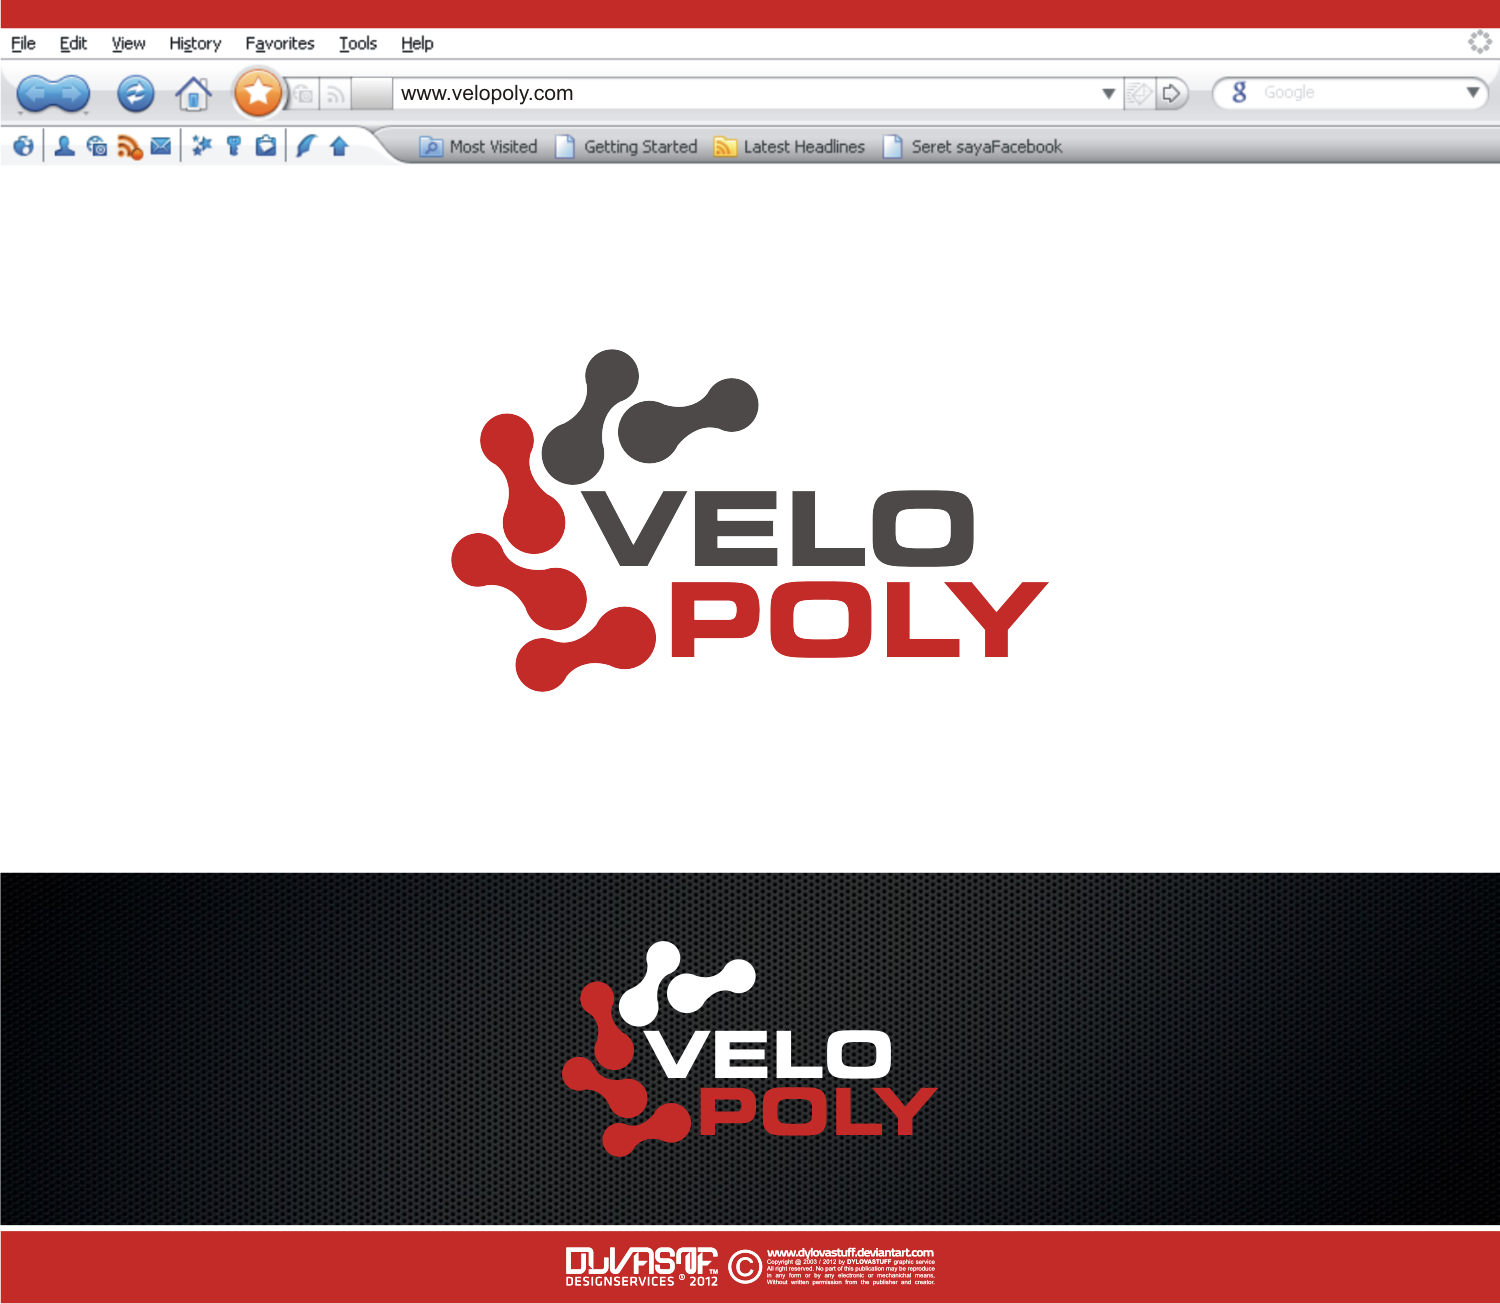 Help VELOPOLY with a new logo